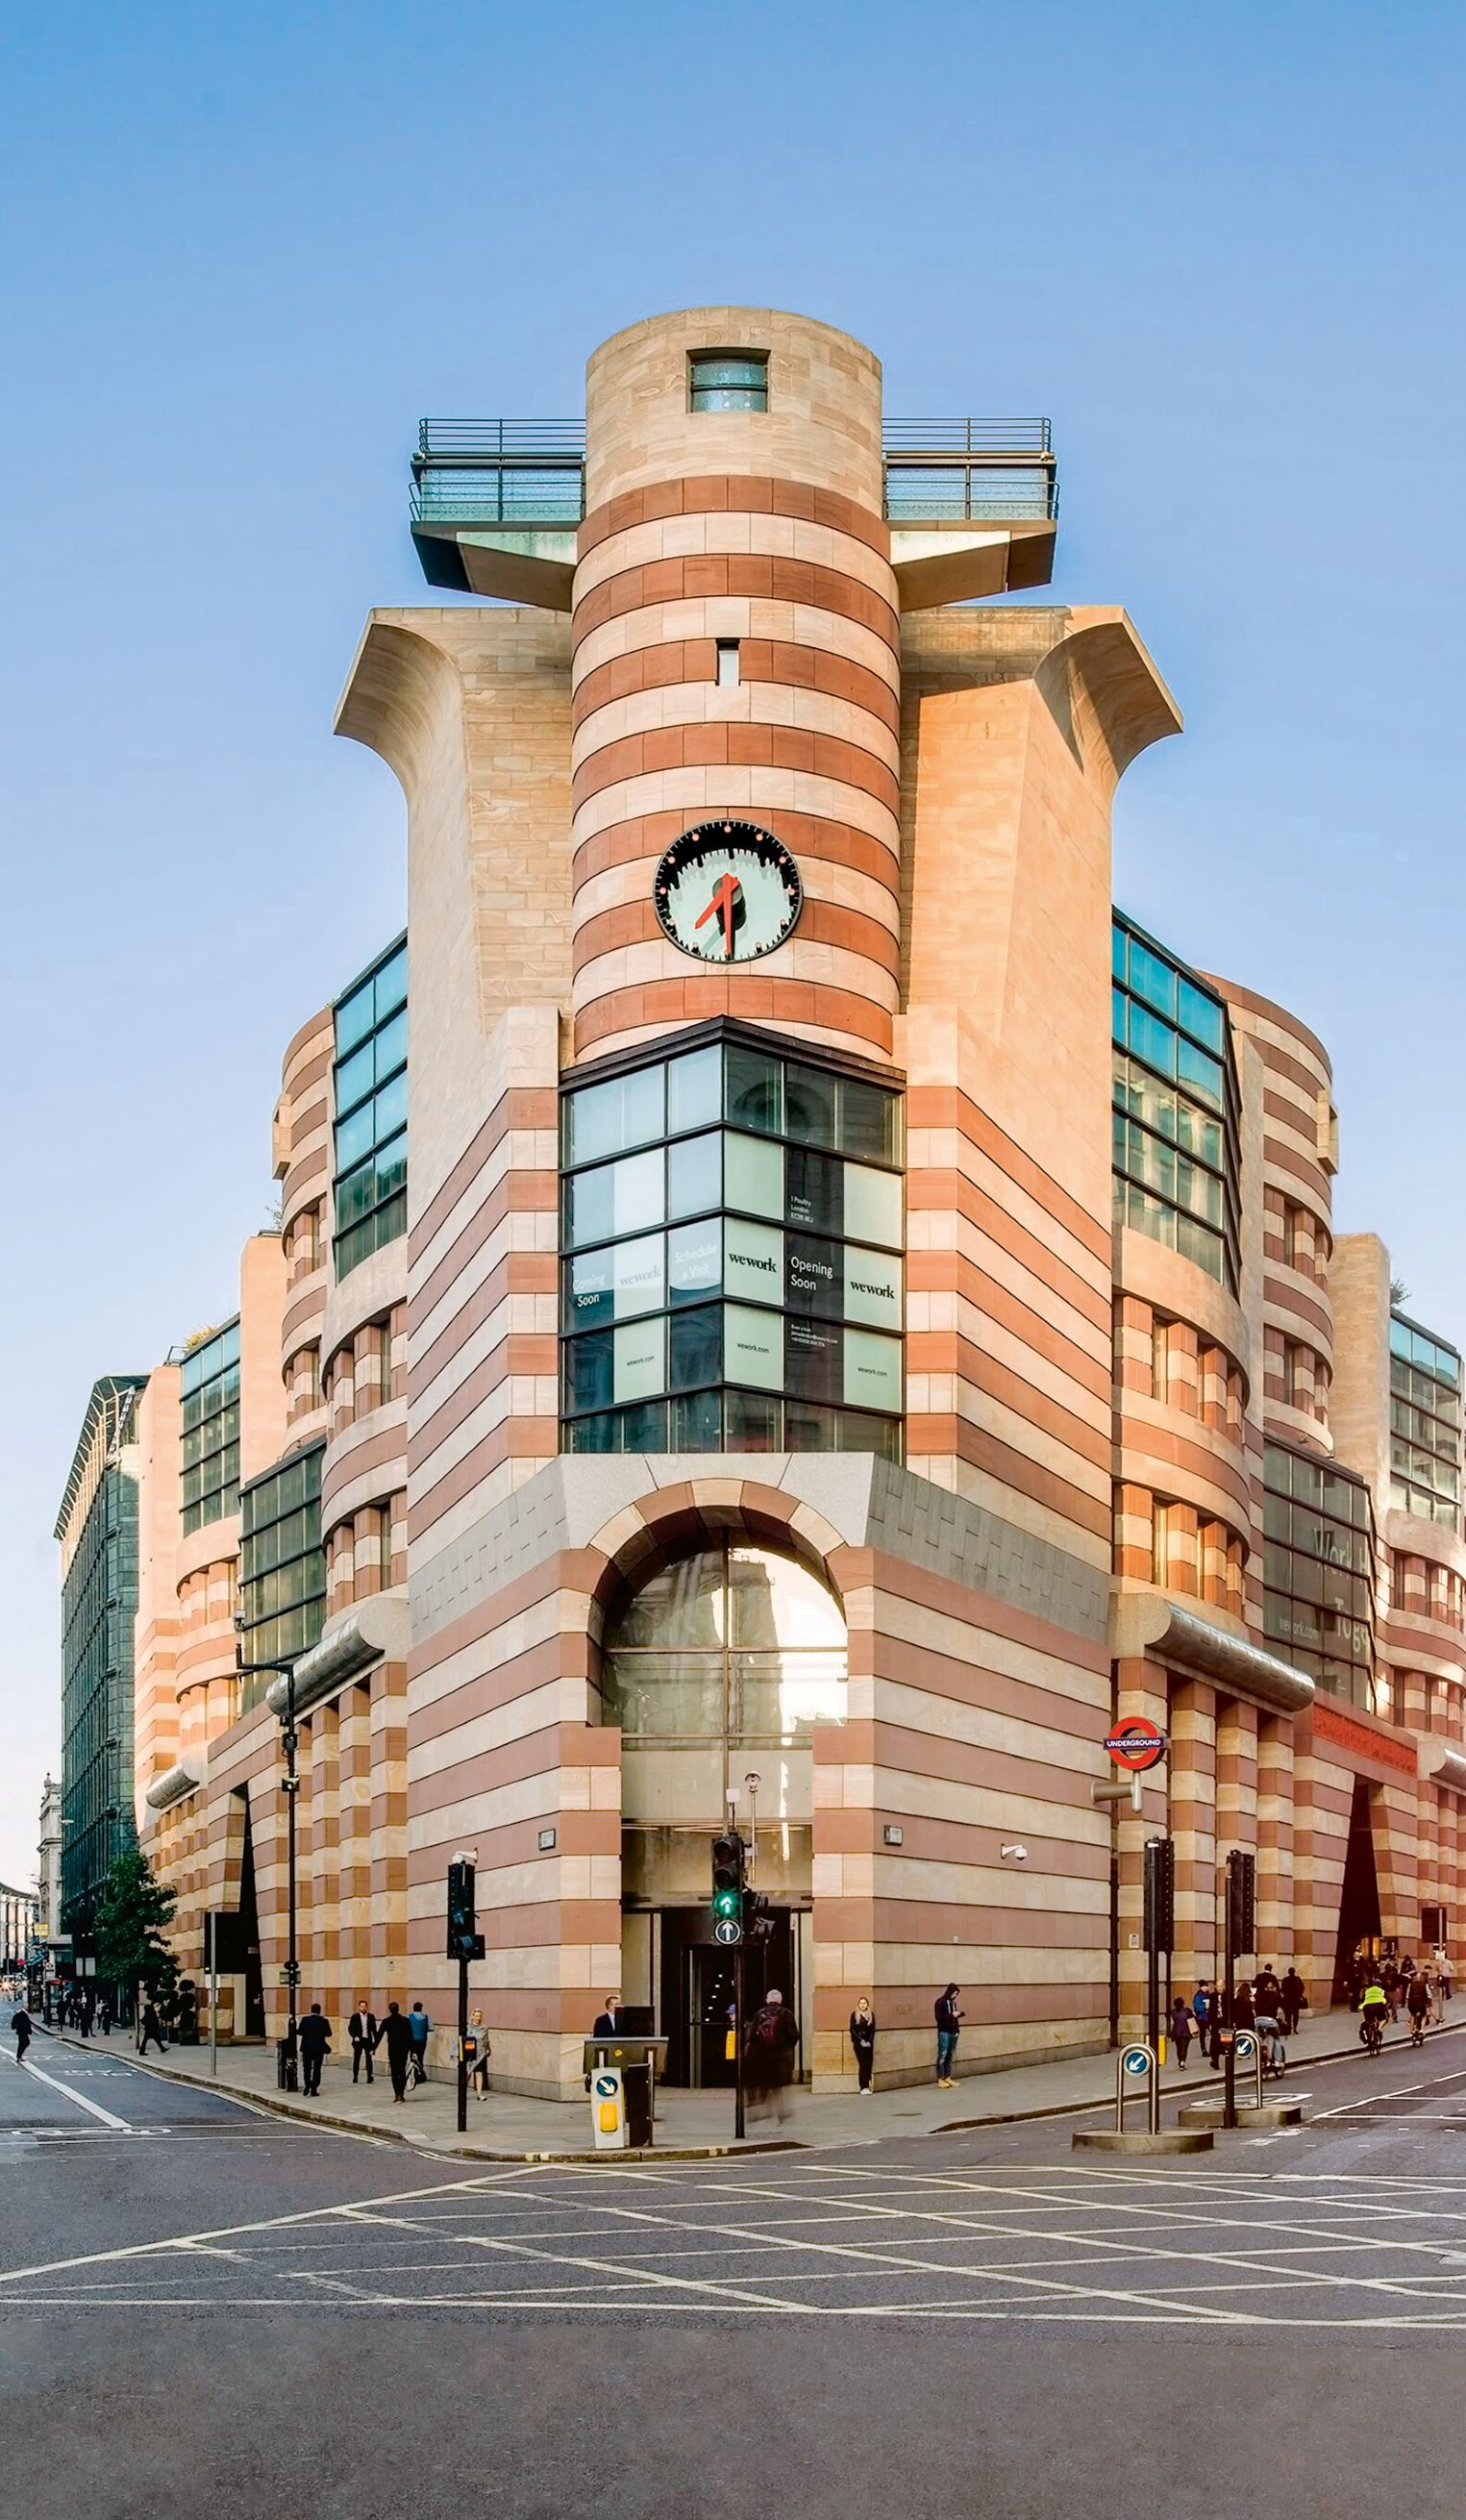 James Stirling, Michael Wilford and Associates: Number 1 Poultry, London, England, UK, 1997